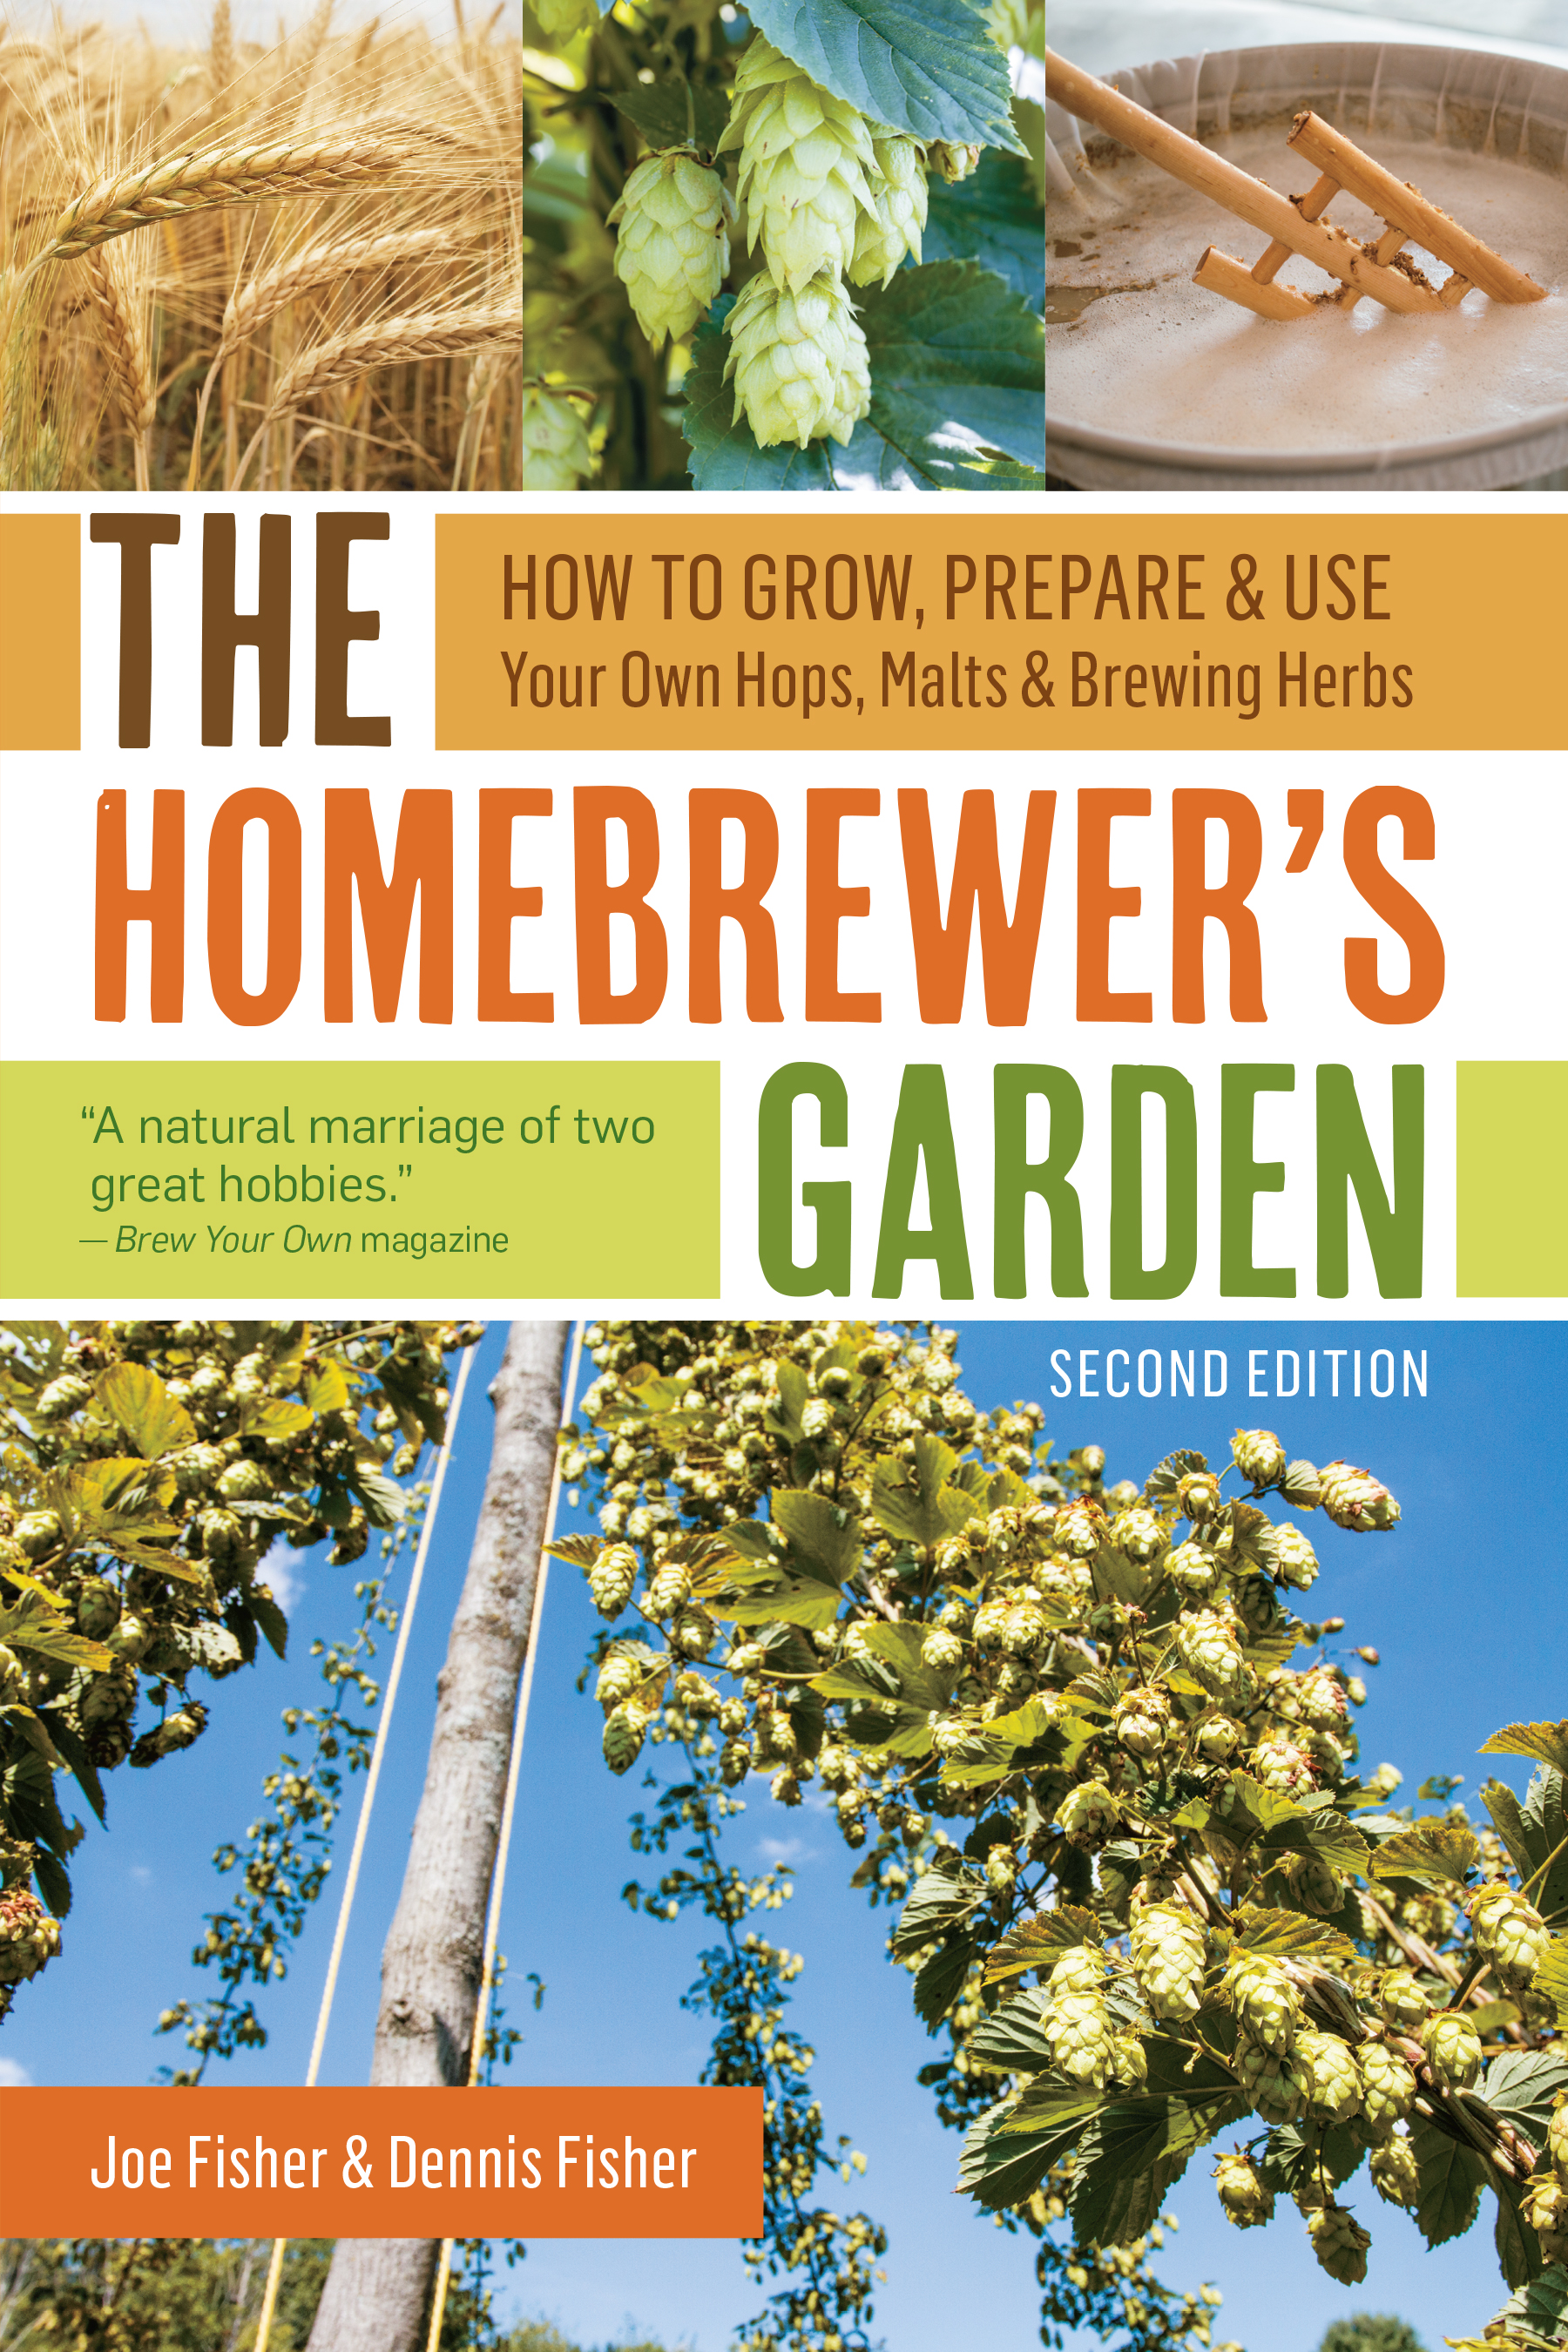 The Homebrewer's Garden, 2nd Edition How to Grow, Prepare & Use Your Own Hops, Malts & Brewing Herbs - Joe Fisher